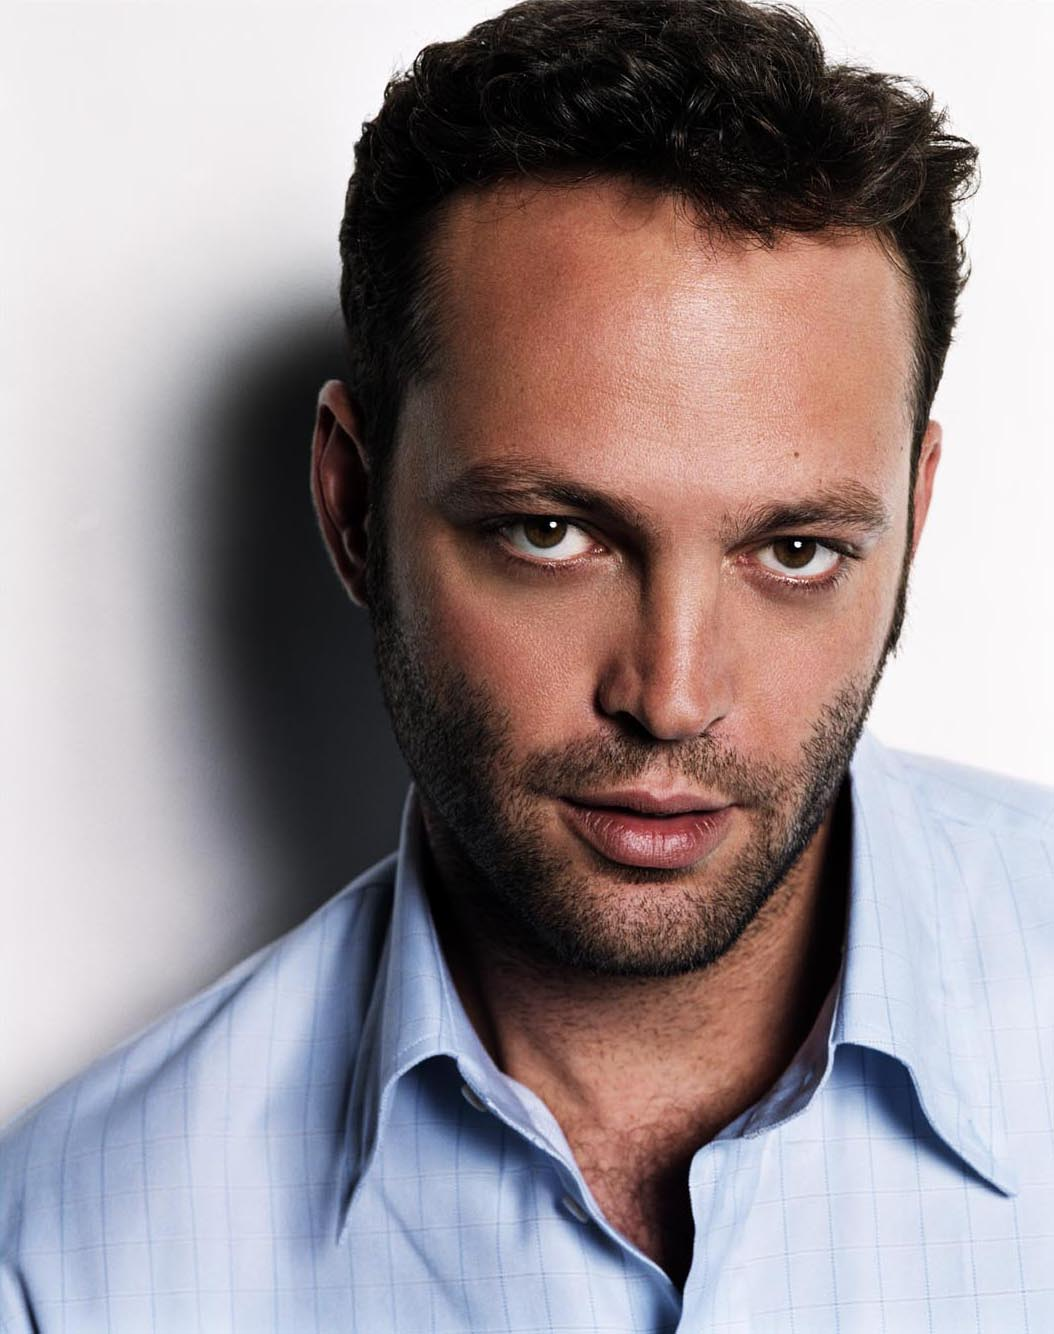 Chatter Busy: Vince Vaughn Quotes